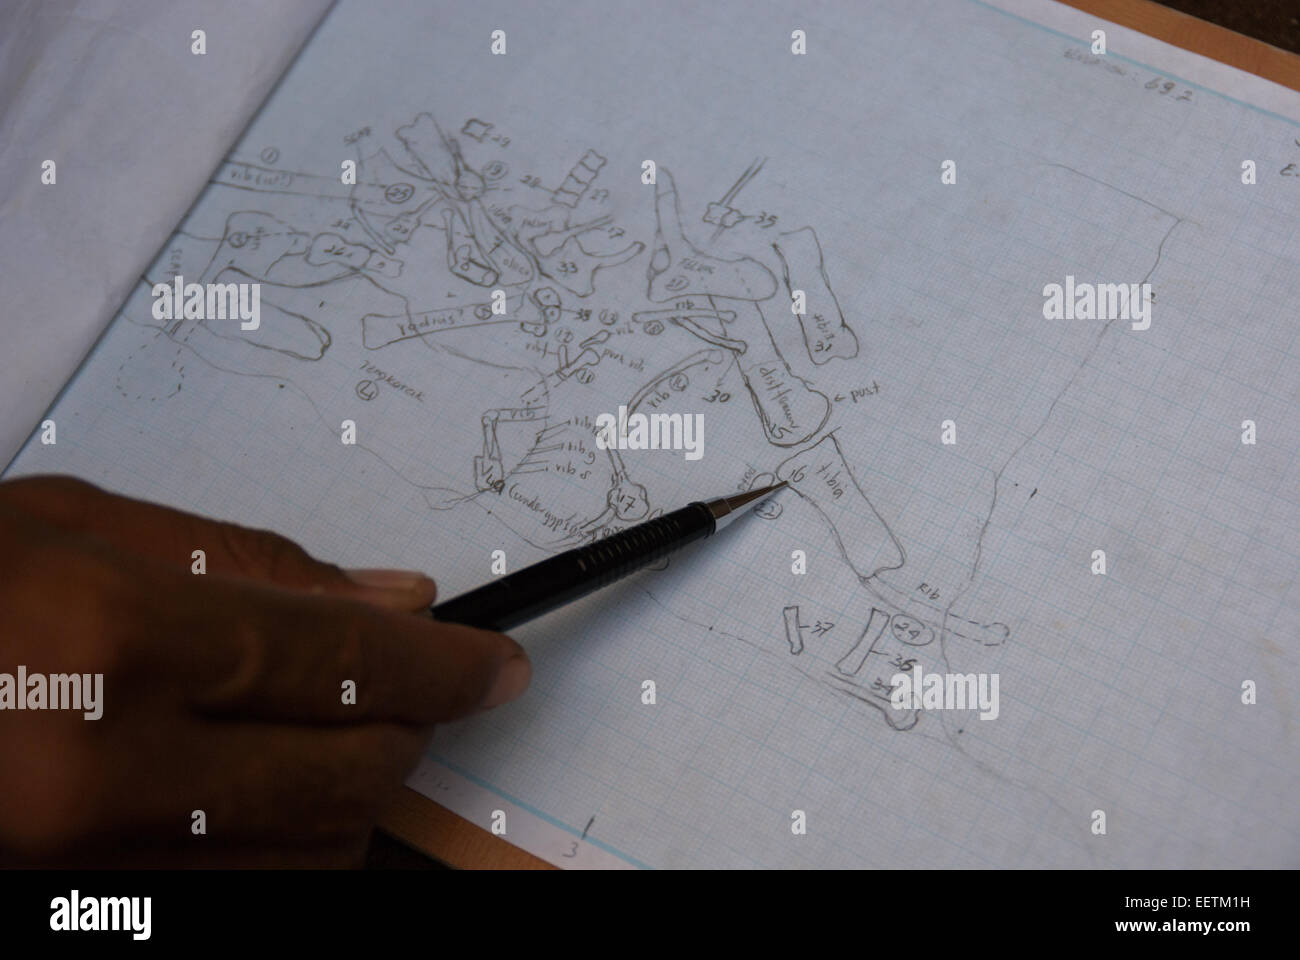 Drawings of ancient elephant--Elephas hysudrindicus-- fossils at excavation site in Central Java. - Stock Image